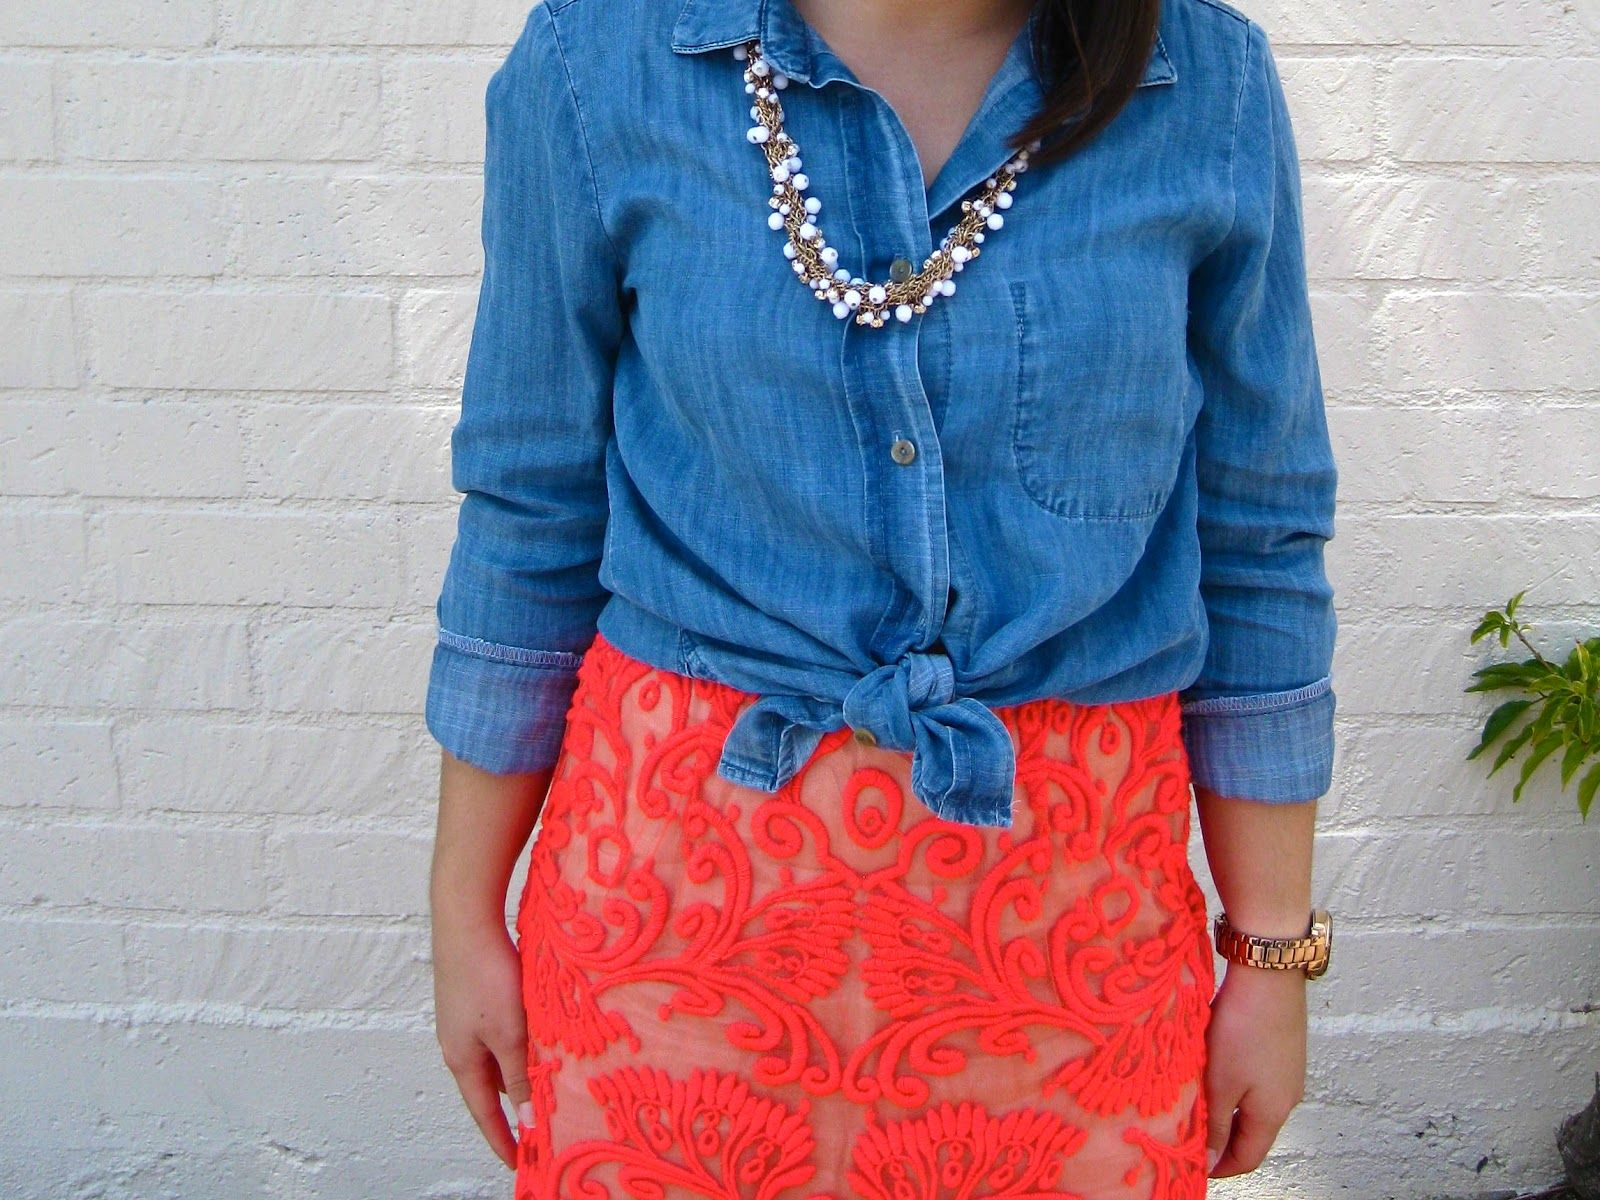 neon lace skirt and chambray #summer #style